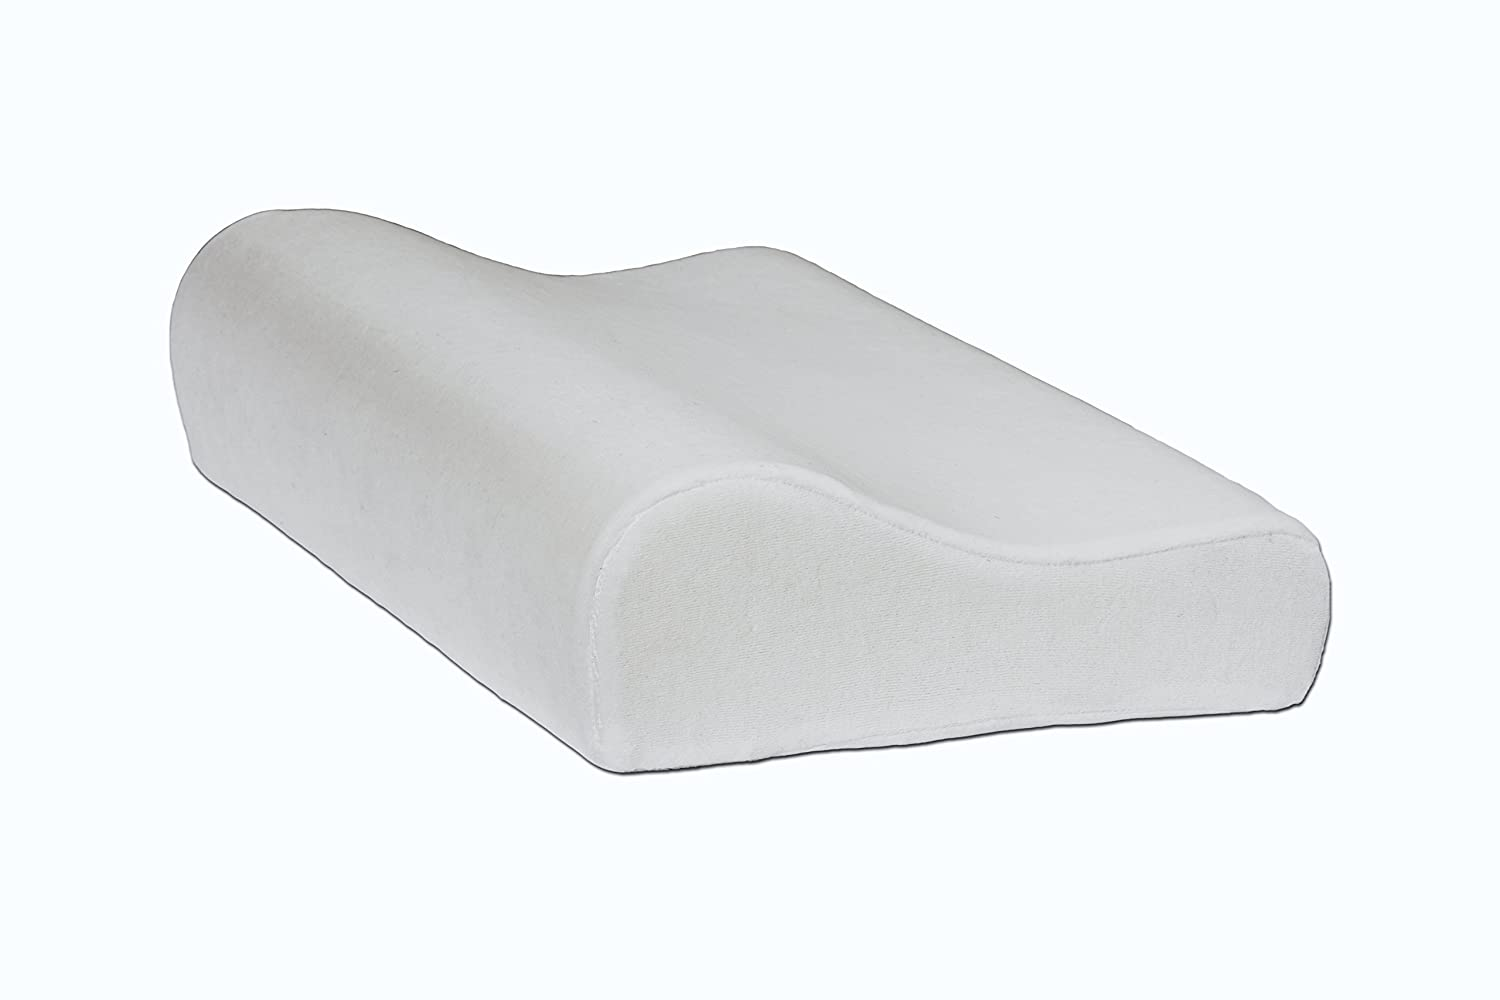 Contour Memory Foam Pillow With White Washable Cover - For Back And Side Sleepers Against Cervical Pain Shoulder Pain and Sore Neck, Size 49 Cm X 30 Cm X 10 Cm (19.7